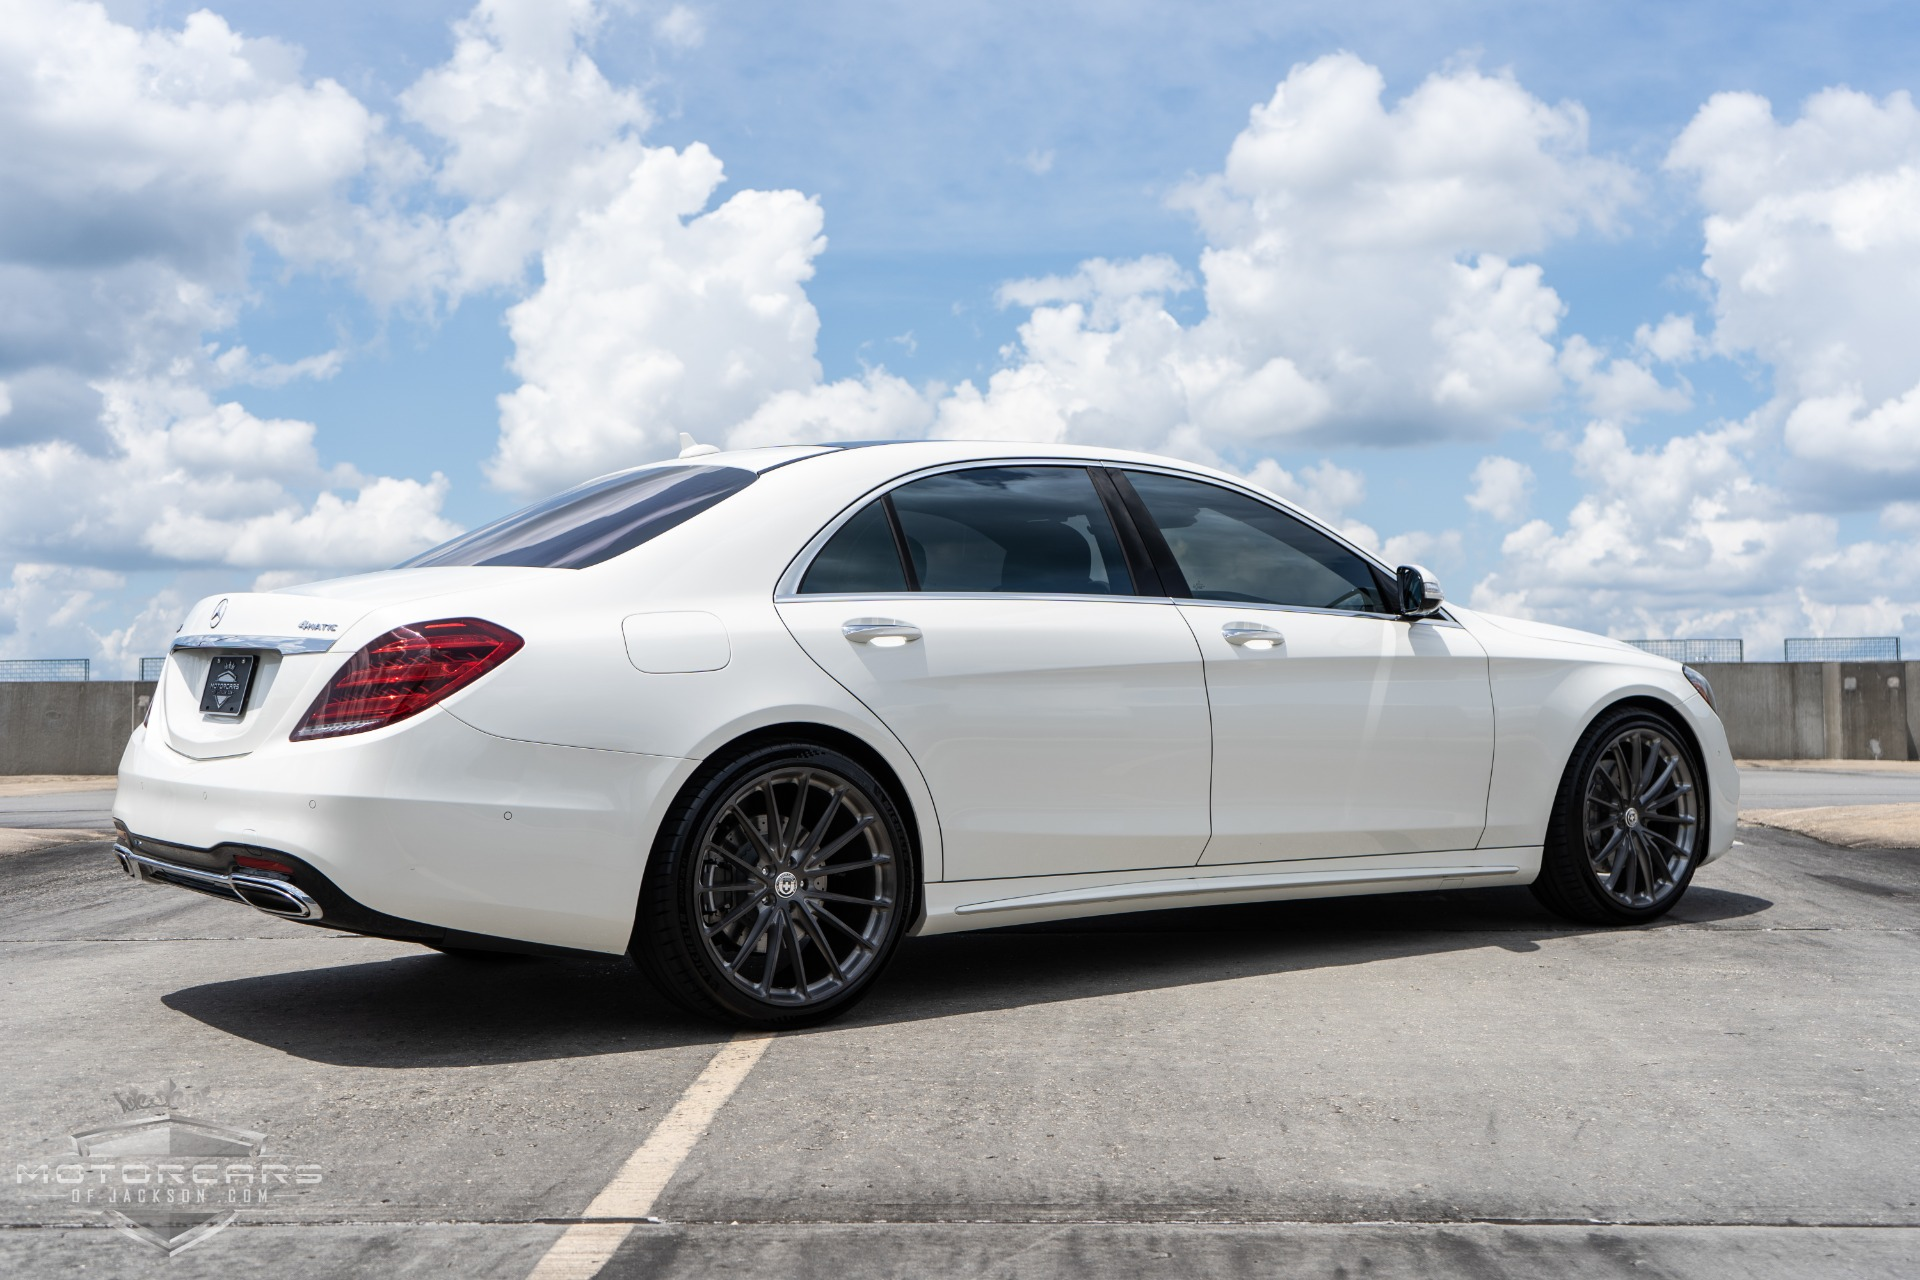 Used-2018-Mercedes-Benz-S-Class-S-560-4MATIC-for-sale-Jackson-MS